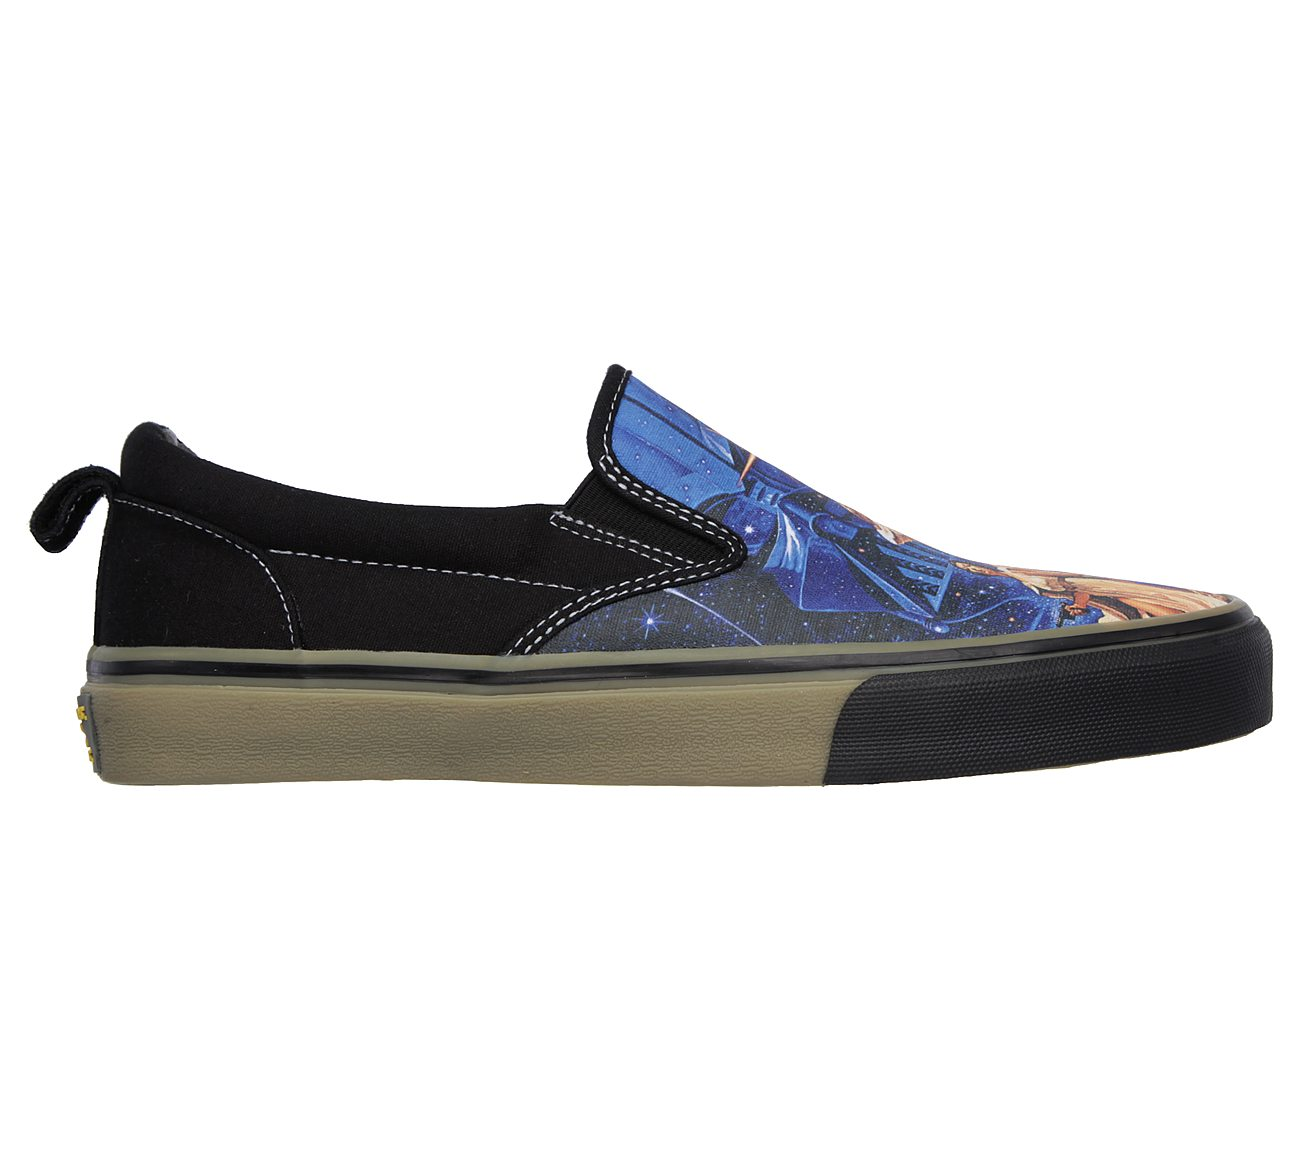 Buy SKECHERS Star Wars  The Menace - A New Hope Star Wars Shoes only ... a1784b8ce